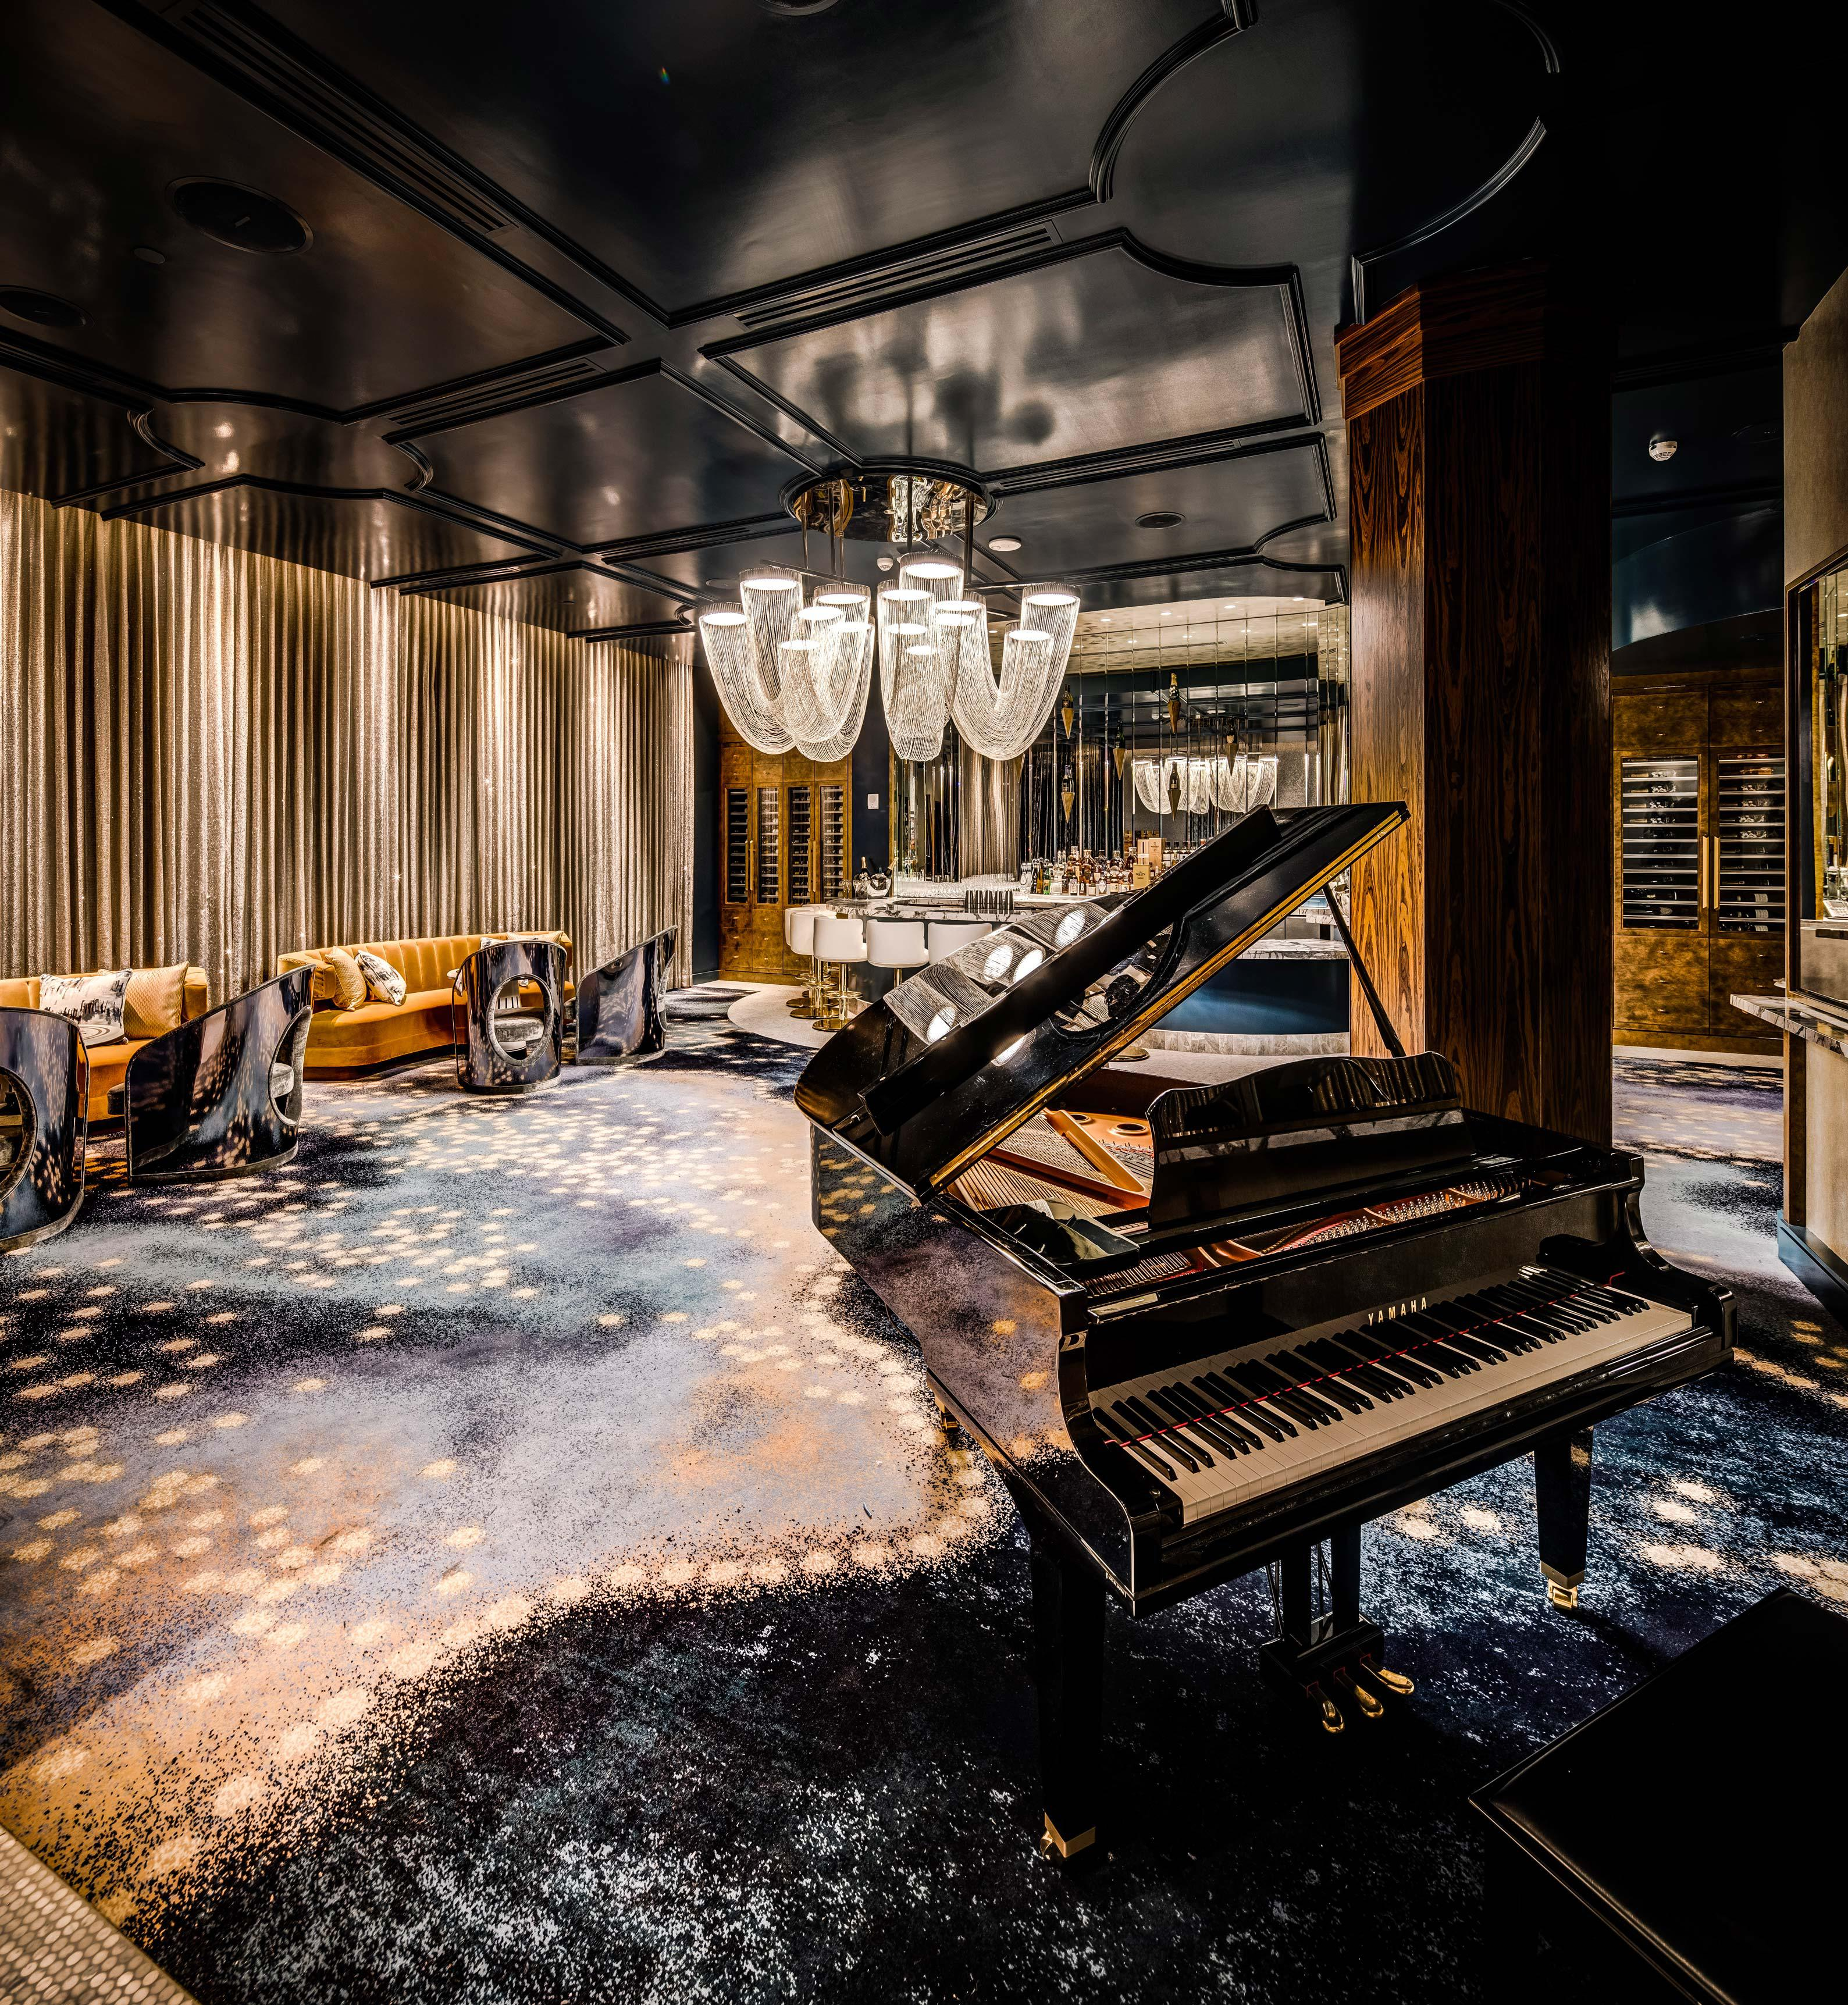 Del Frisco's Double Eagle Steakhouse Los Angeles The Edith Room private dining room